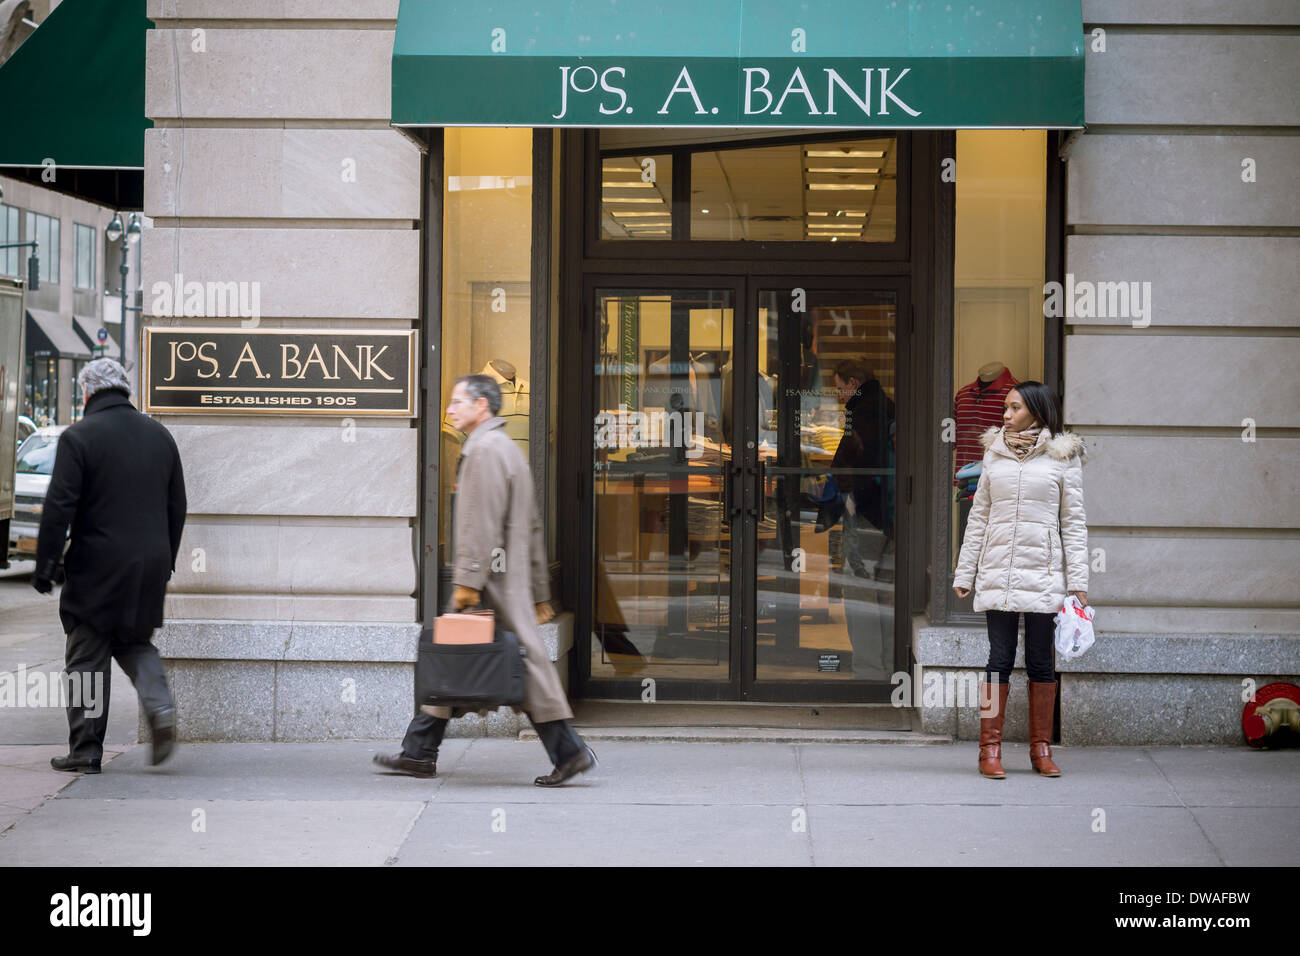 Jos. A. Bank Clothiers is located in New York, New York. This organization primarily operates in the Suits, Men's business / industry within the Apparel and Accessory Stores sector. Jos. A. Bank Clothiers employs approximately 27 people at this branch location.